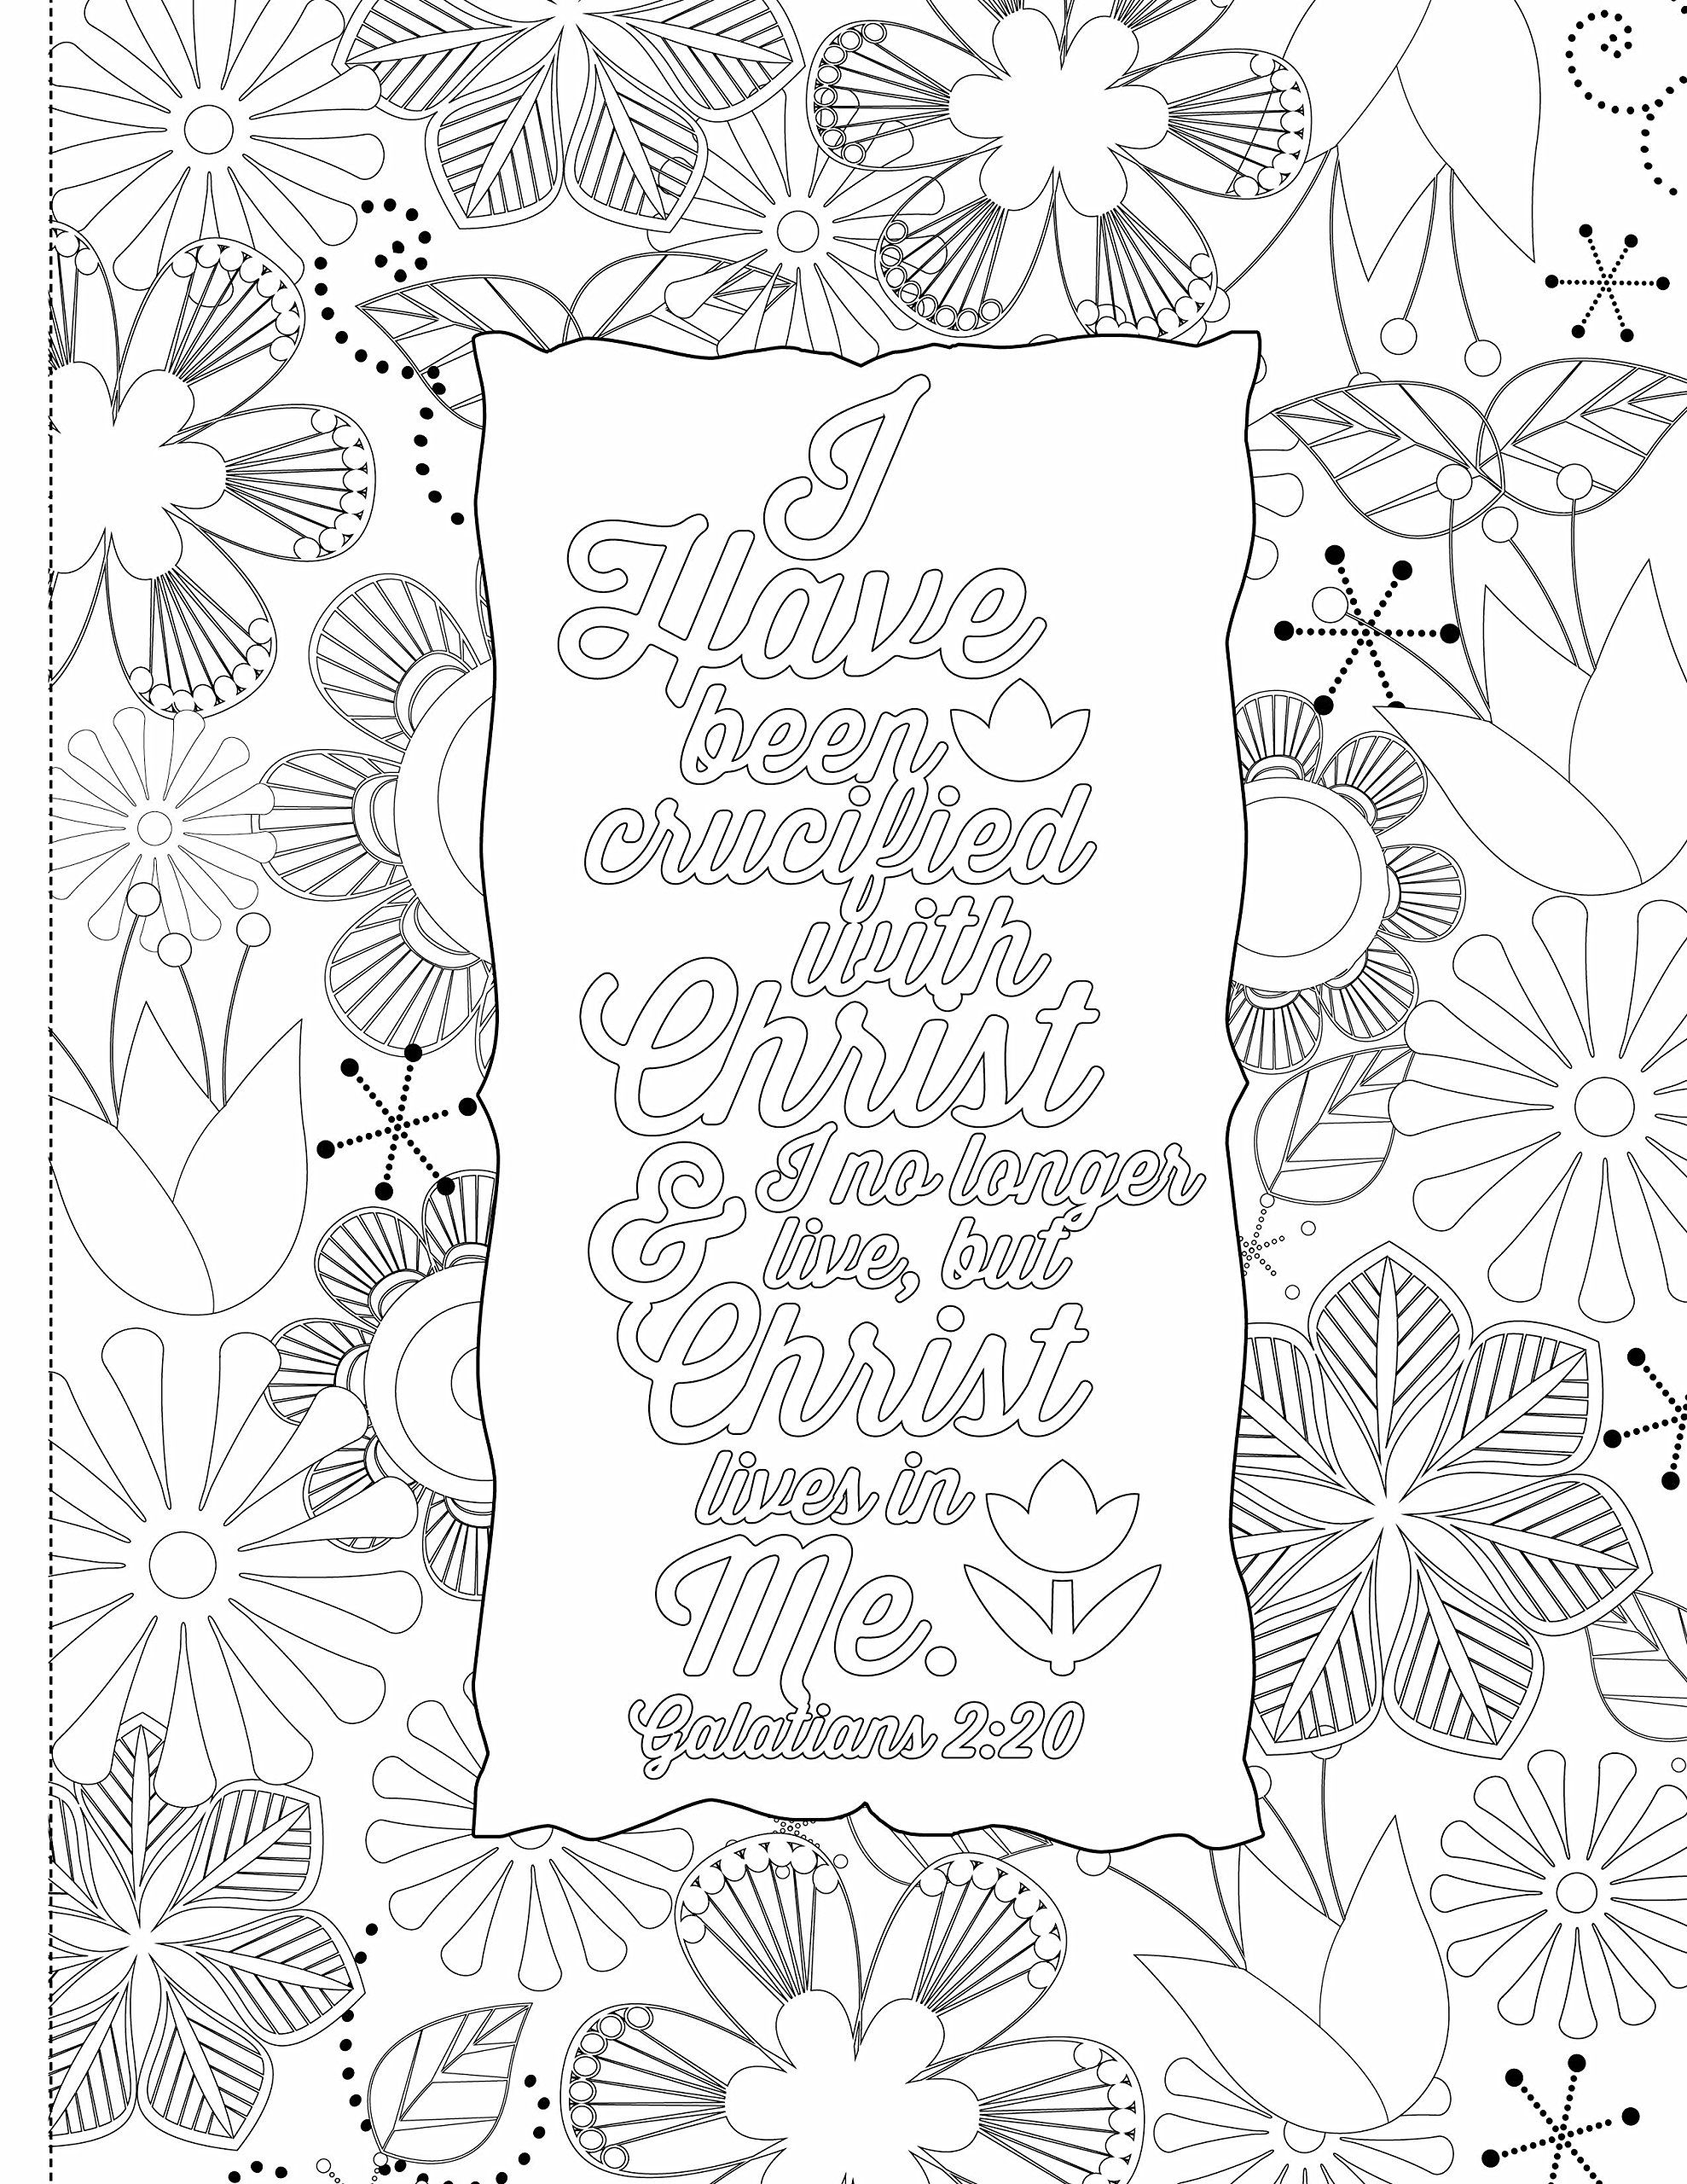 coloring pages you can color on the computer - coloring pages you can color on the puter